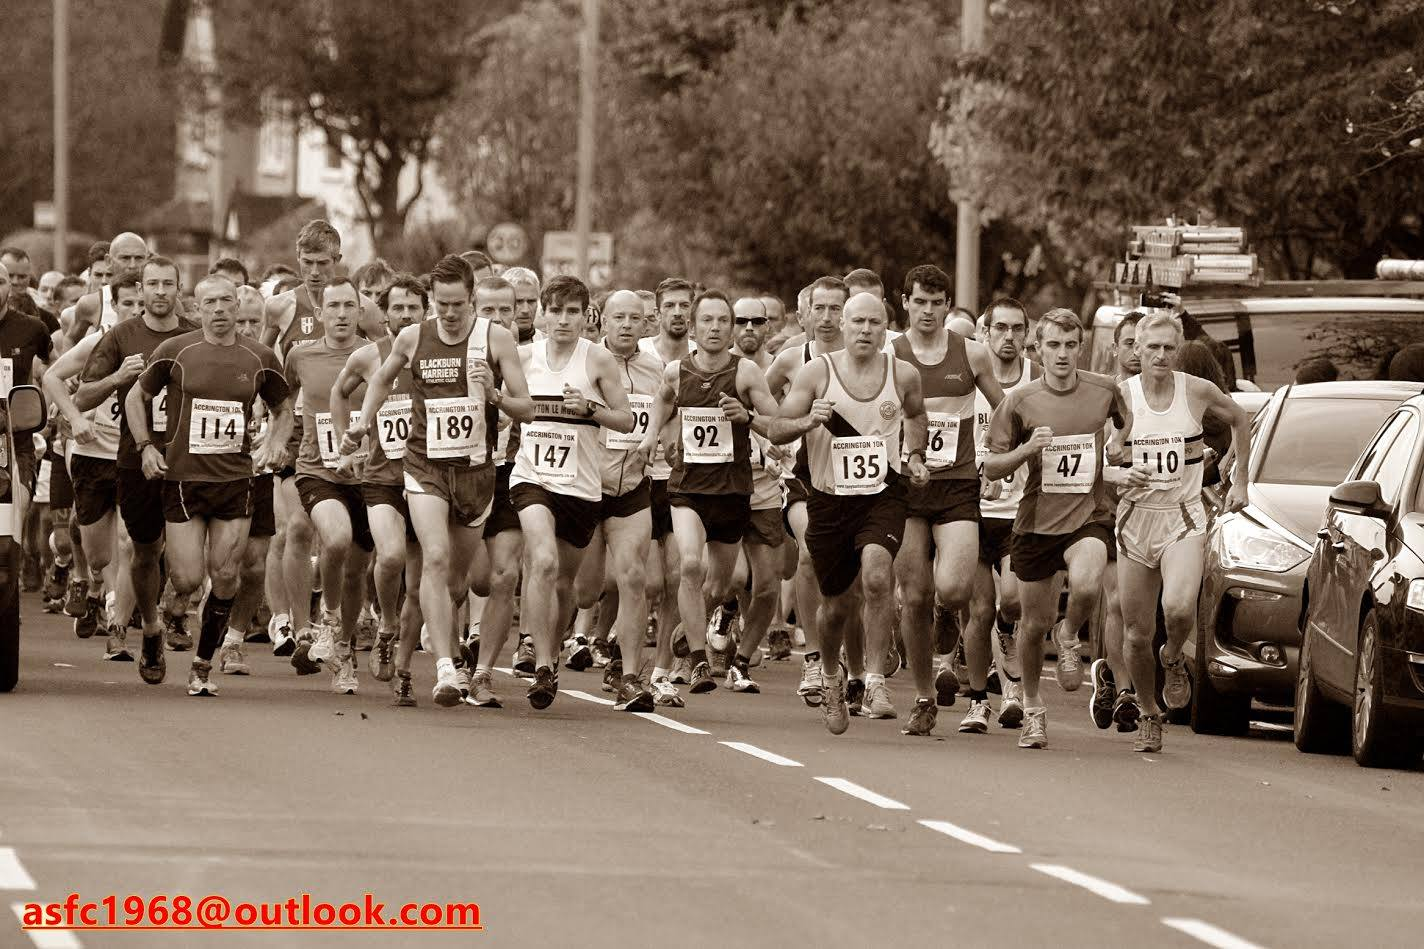 ACCRINGTON 10K ROAD RACE